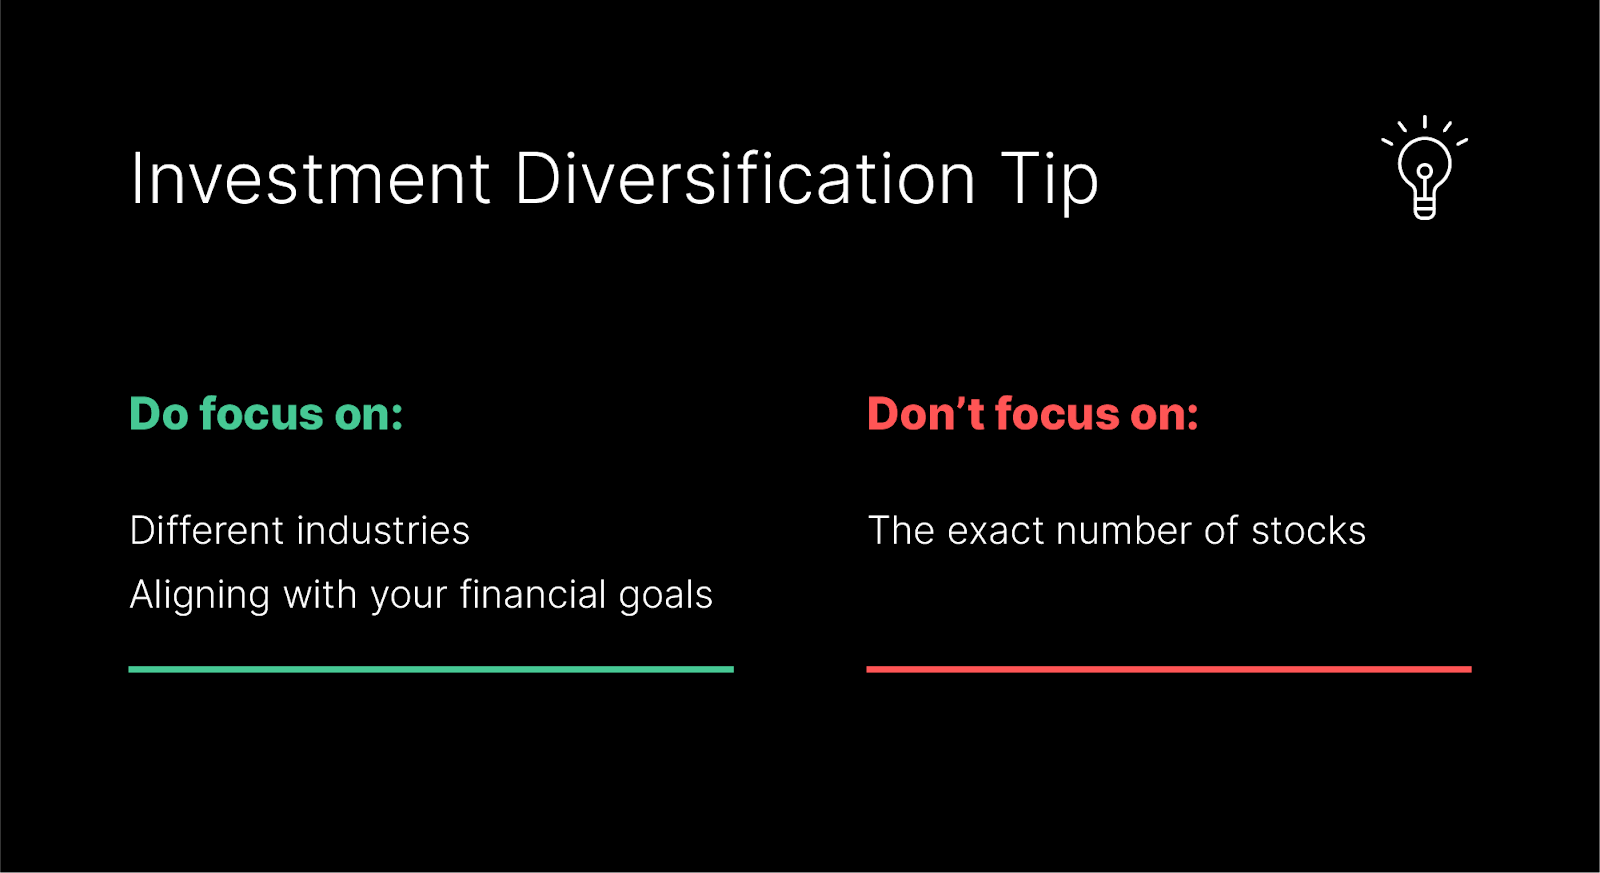 investment diversification tip